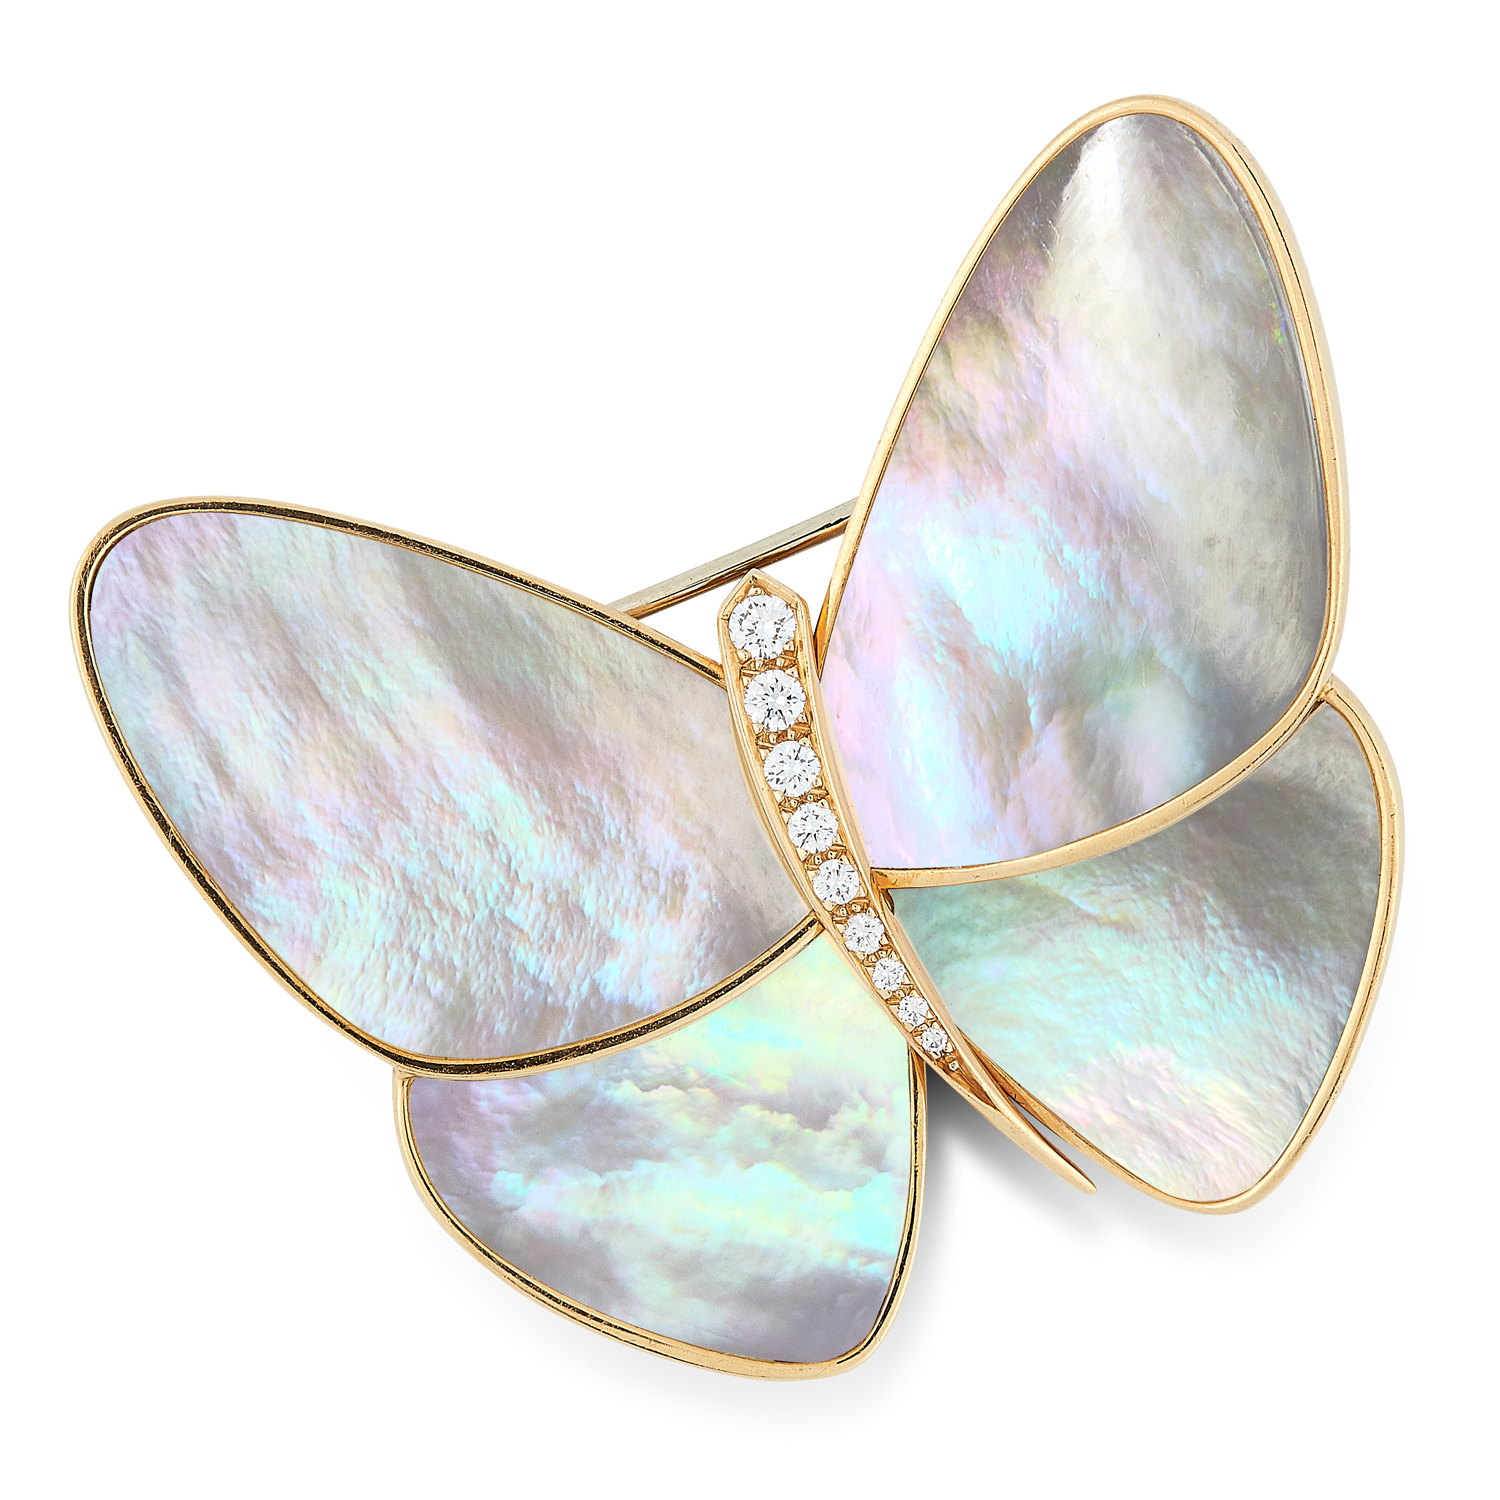 A MOTHER OF PEARL AND DIAMOND BUTTERFLY BROOCH, VAN CLEEF & ARPELS in 18ct yellow gold, designed